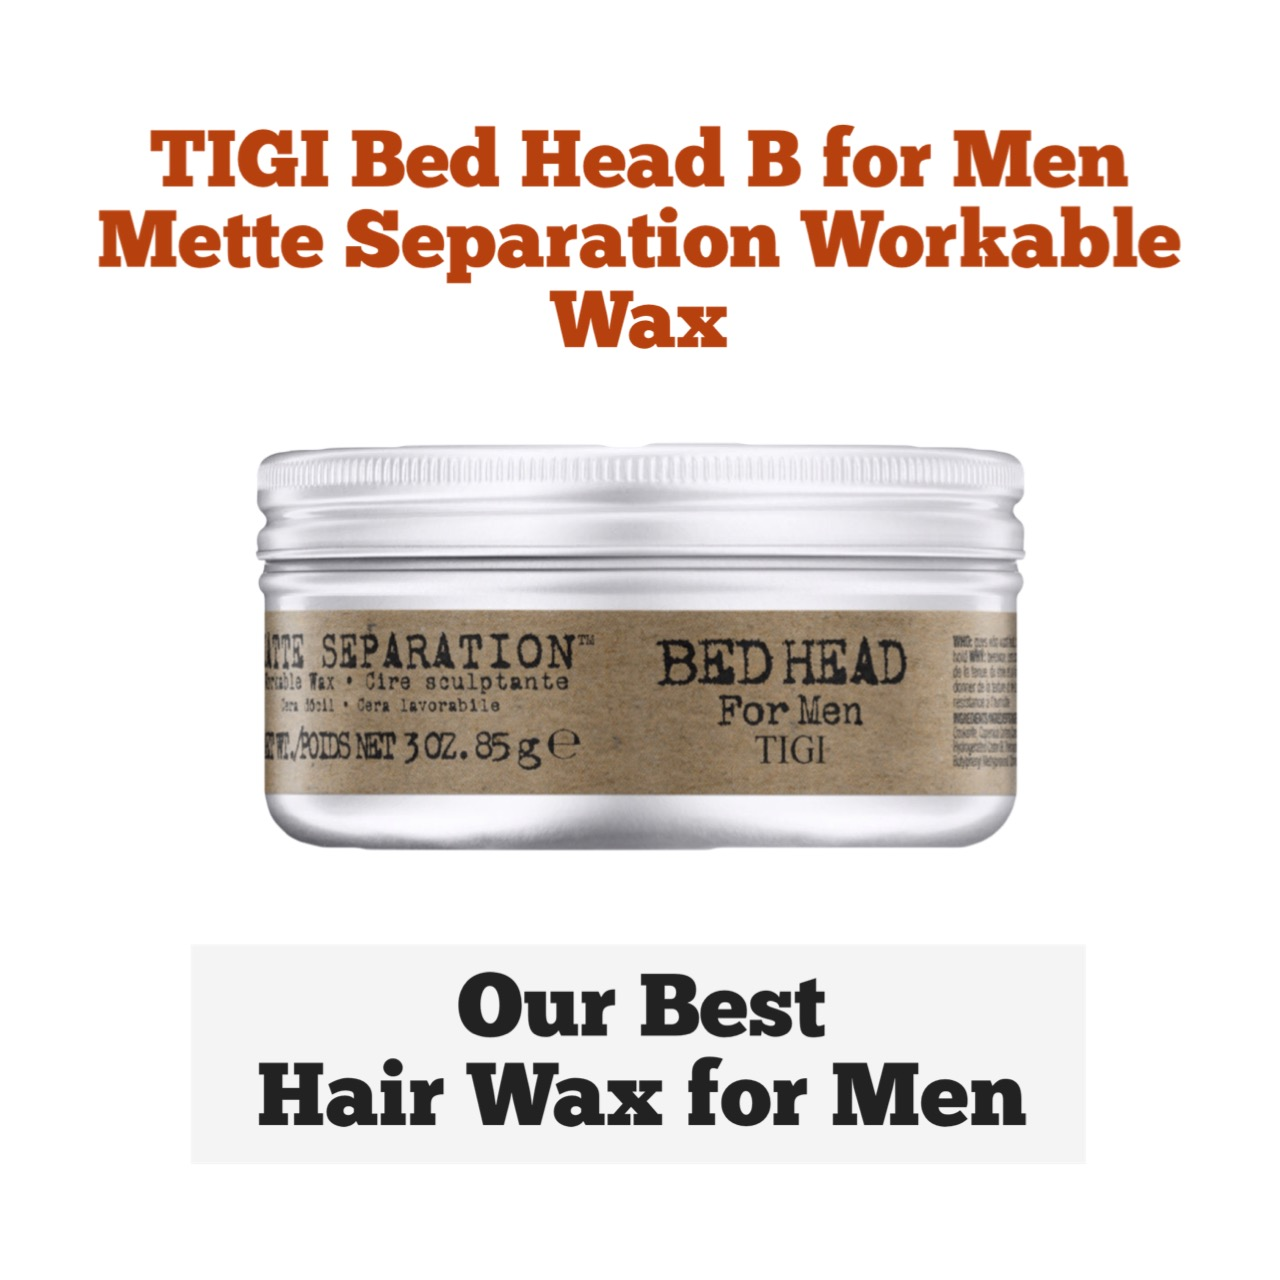 10 Best Hair Waxes for Men: Reviews and Buyer's Guide